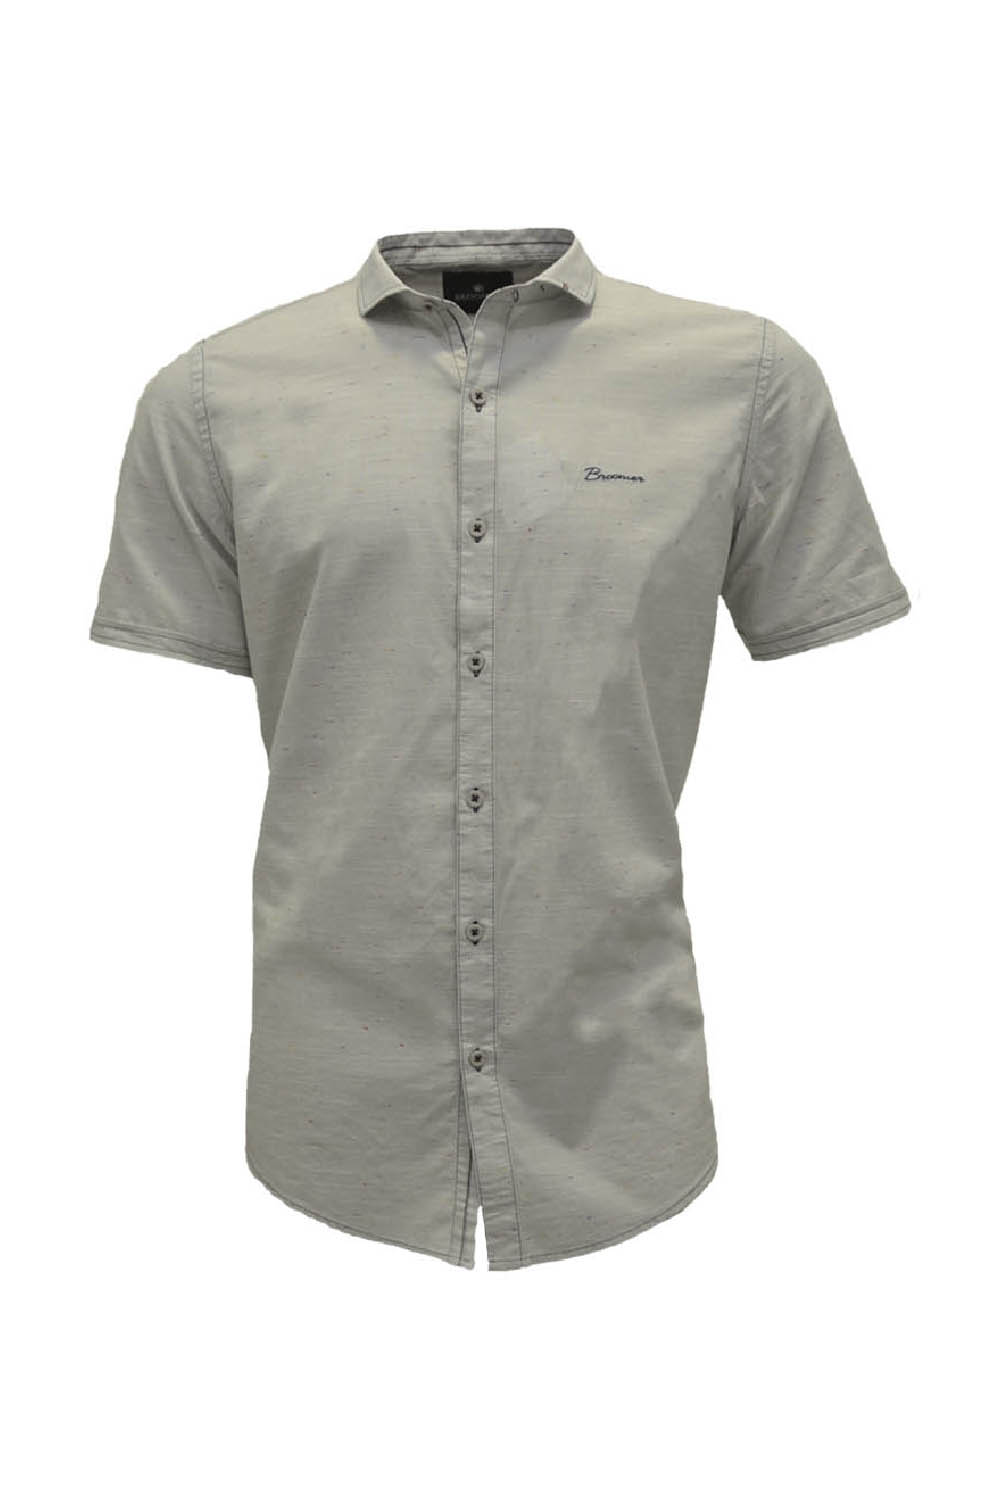 CAMISA MC BLUES SLIM ALGODAO TRENDY LISO CINZA CLARO